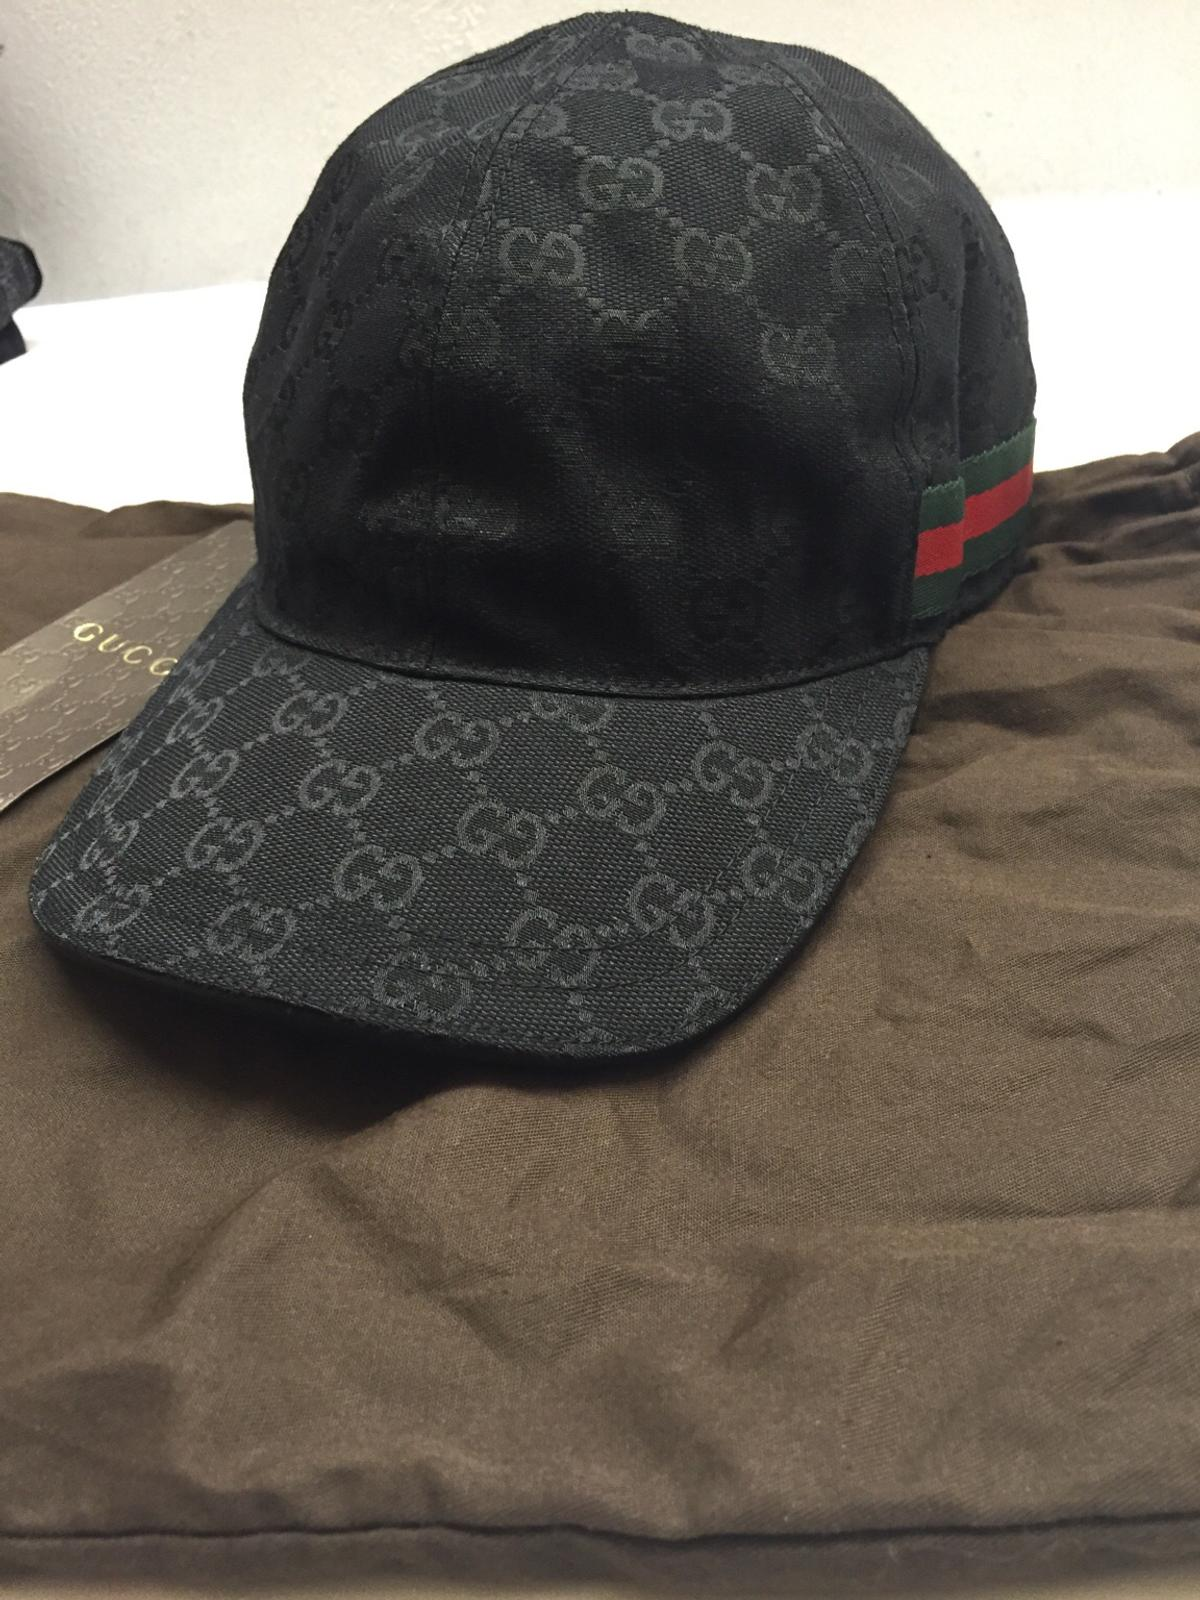 db54cc59a798bc brand new GUCCI Cap Black M in OL8 Oldham for £110.00 for sale - Shpock